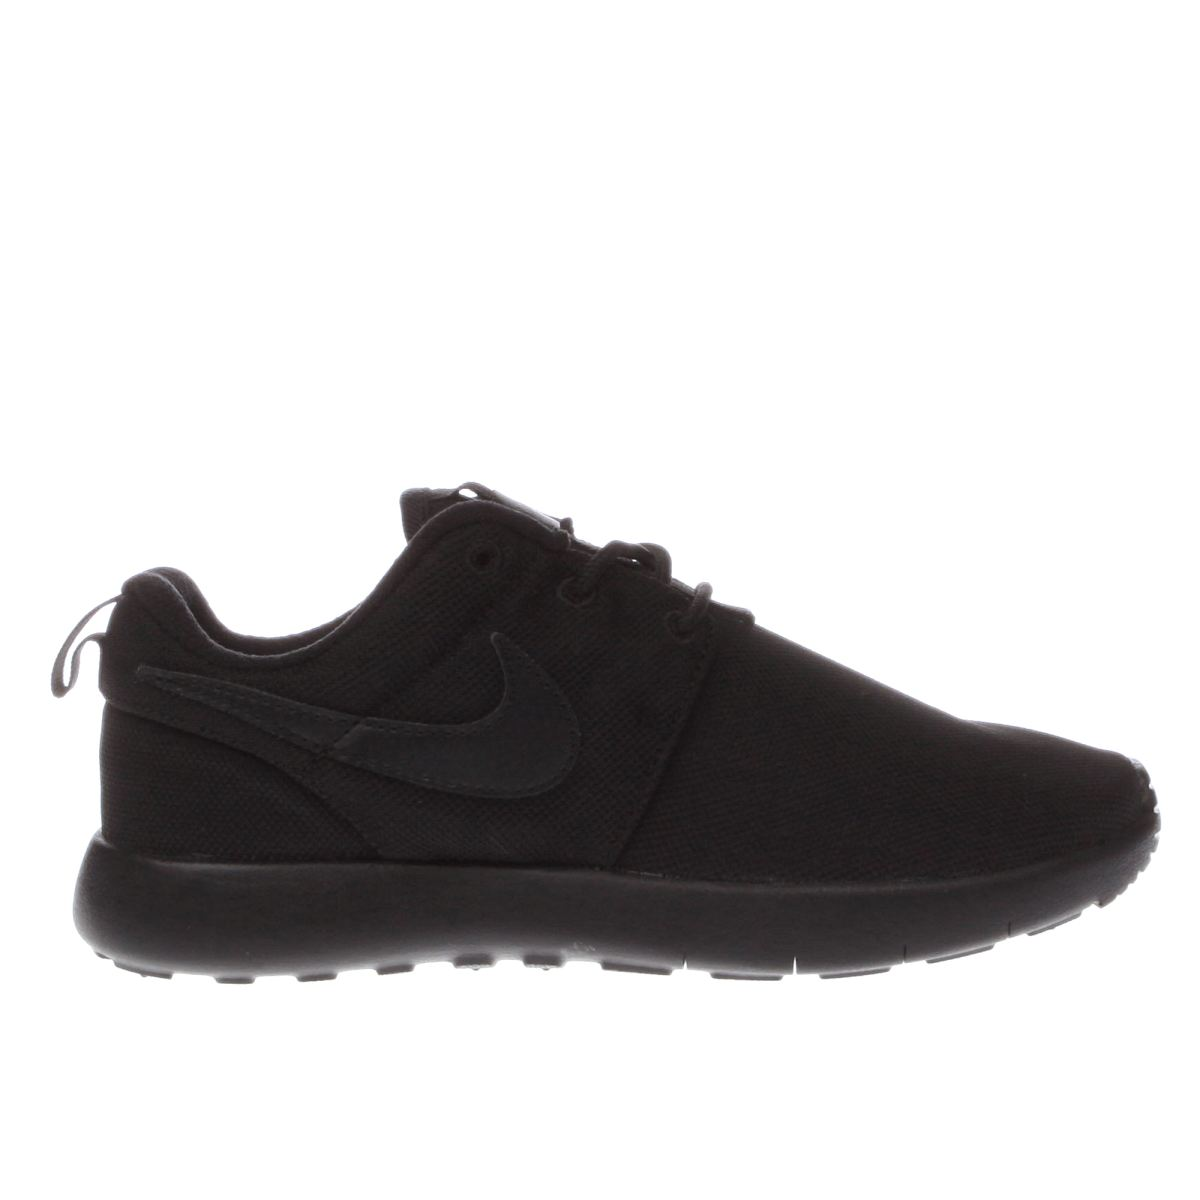 save off af72d 5352e Nike Roshe Run Trainers   Nike Shoes for Men, Women   Kids   schuh